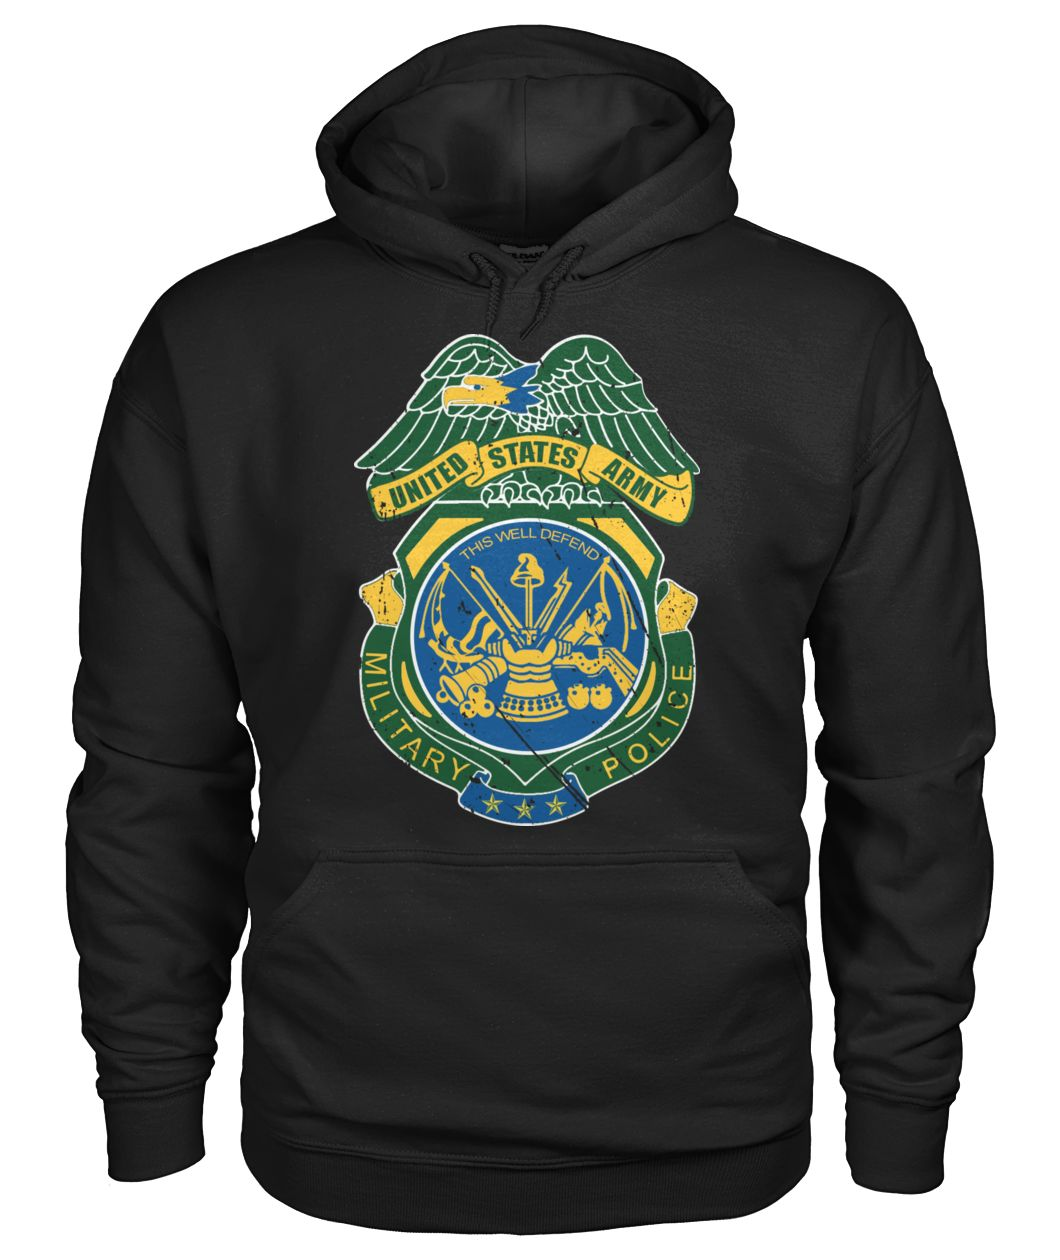 United States Army Military Police hoodie sweatshirt t-shirt